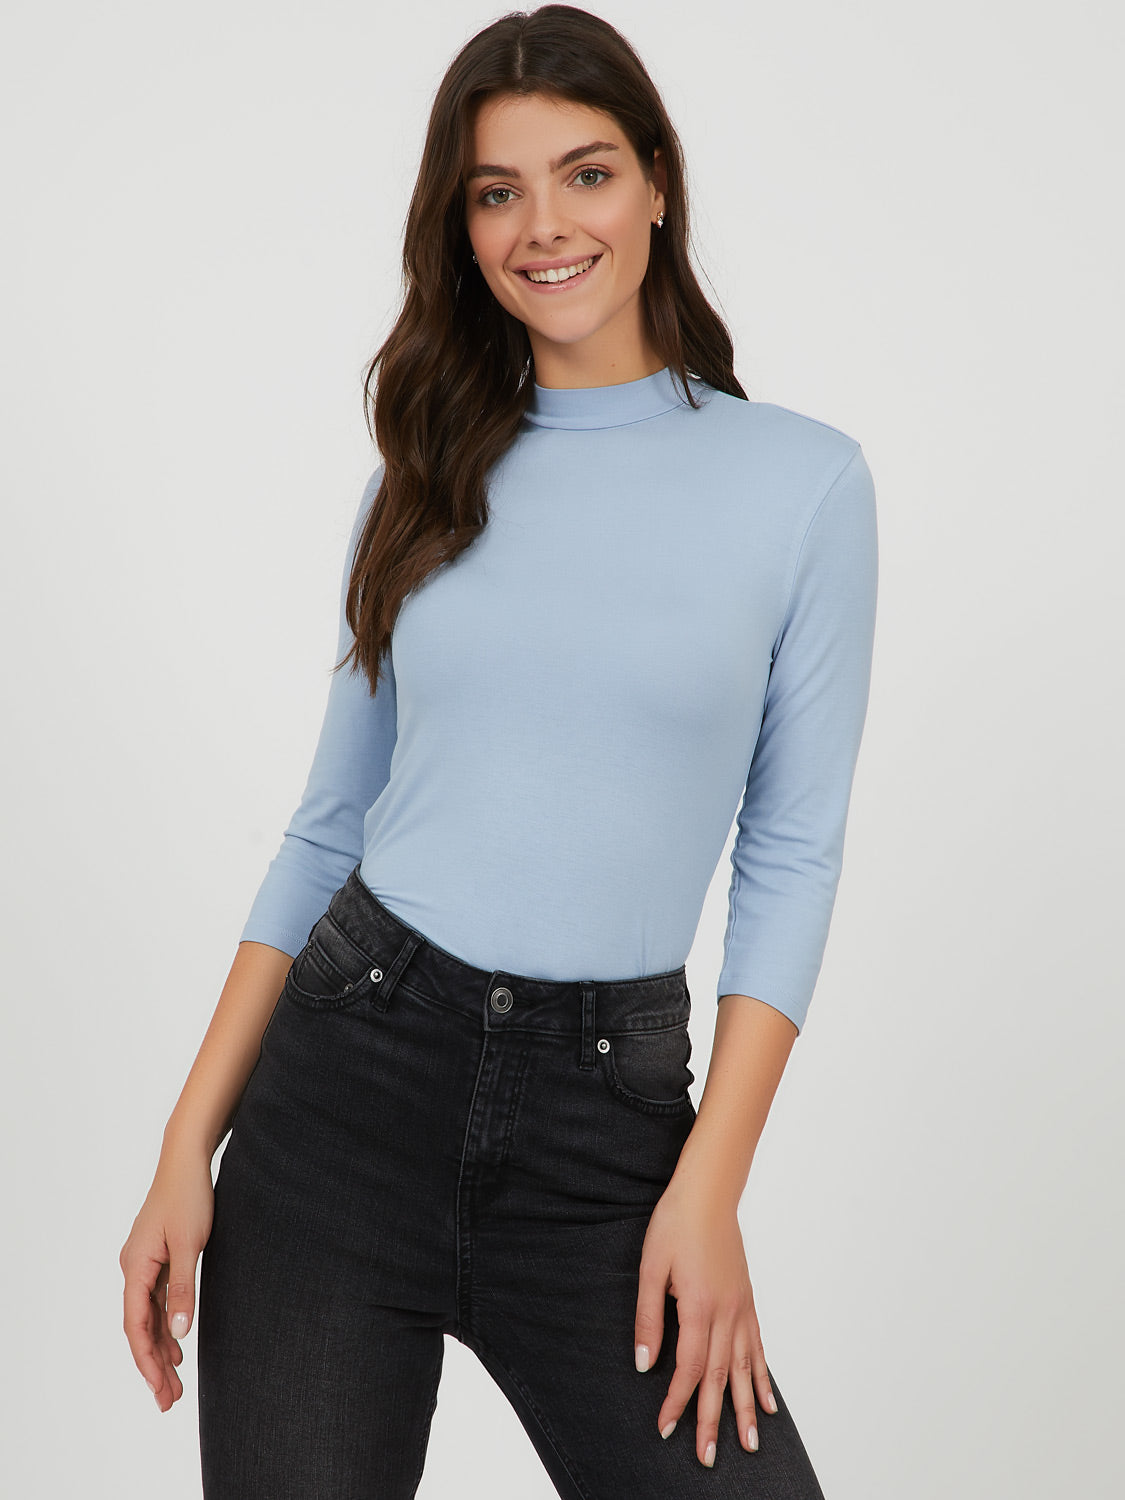 ¾ Sleeve Mock Neck Top